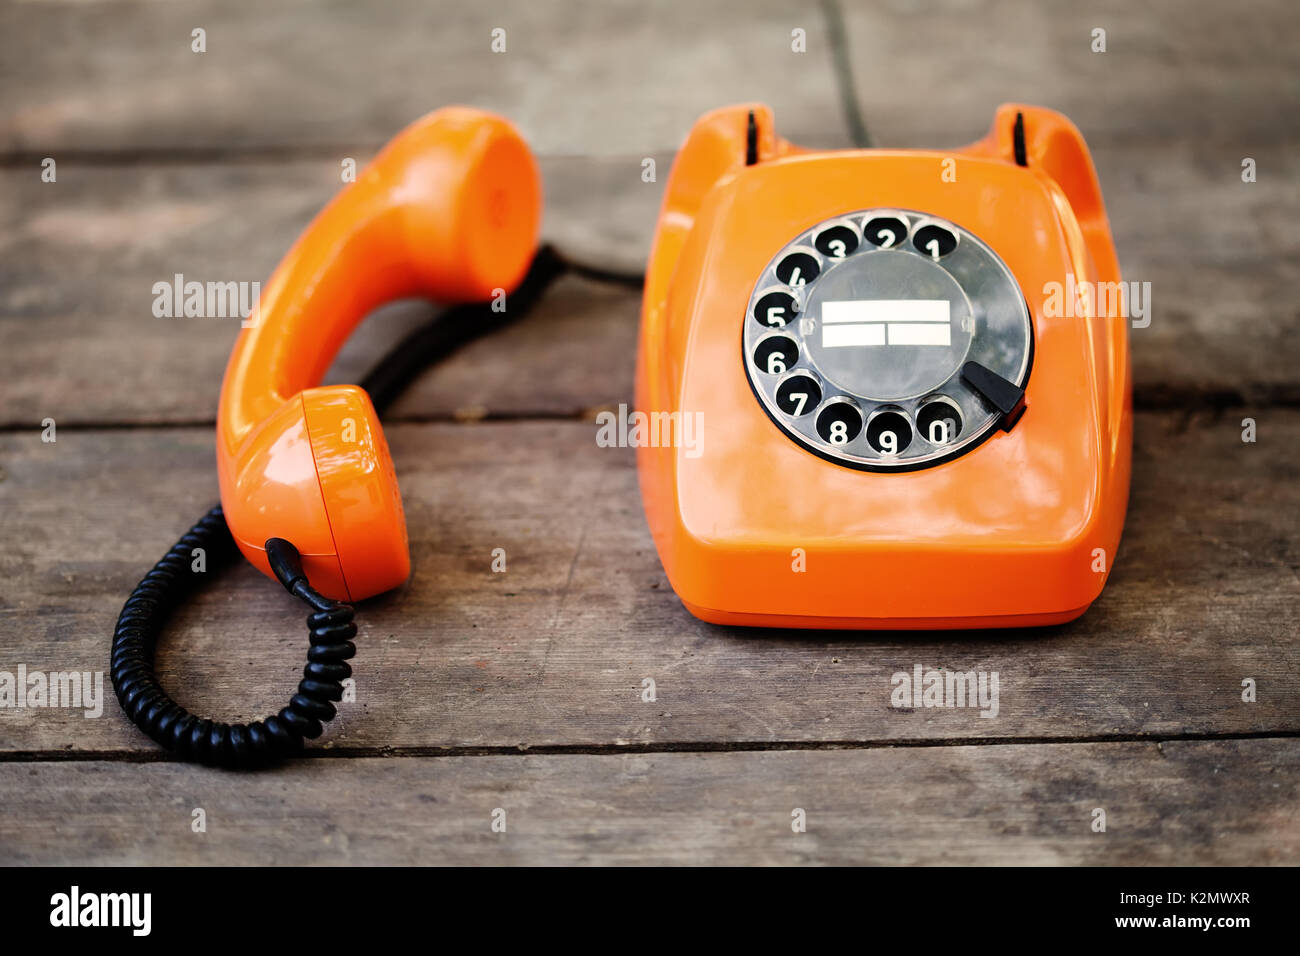 Busy retro phone orange color, handset receiver on wooden textured background. Shallow depth field photography - Stock Image